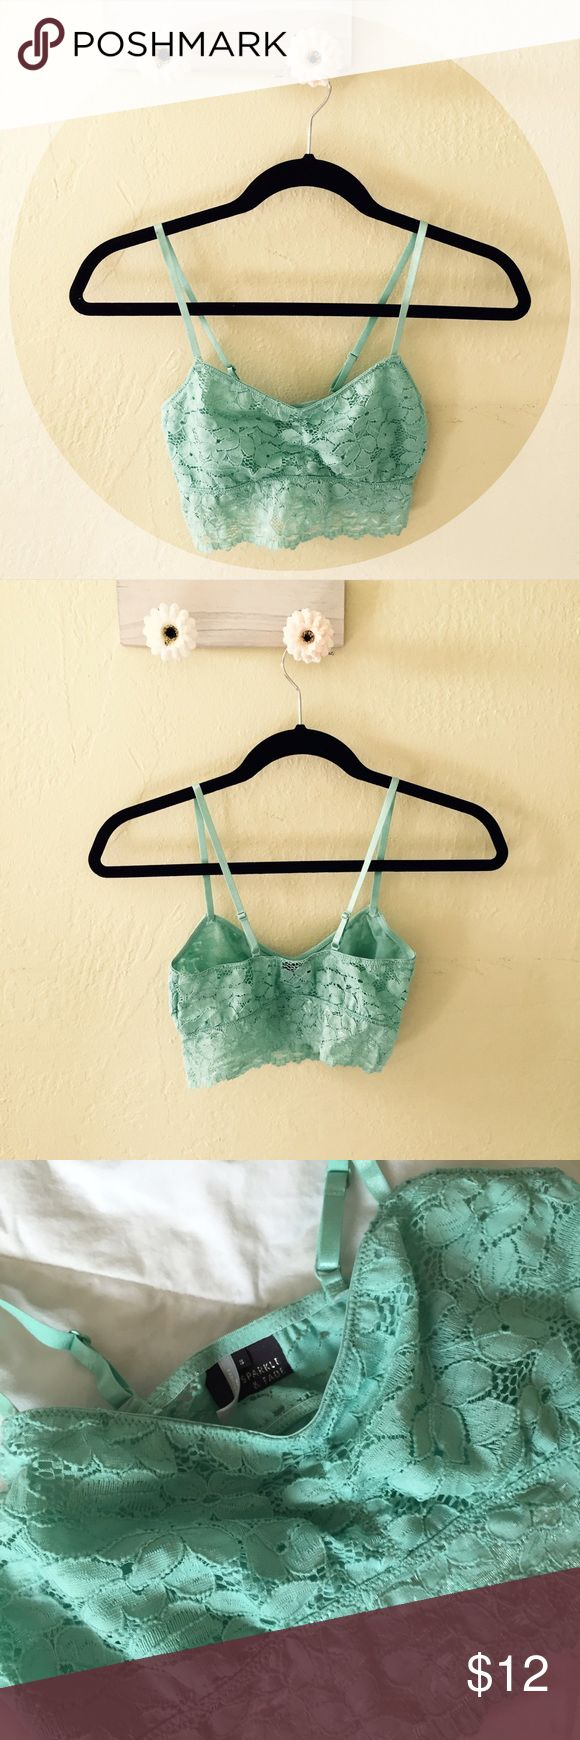 Scalloped lace bralette Sparkle & Fade teal bralette with scalloped lace detailing and adjustable straps  worn 3-5 times Urban Outfitters Intimates & Sleepwear Bandeaus